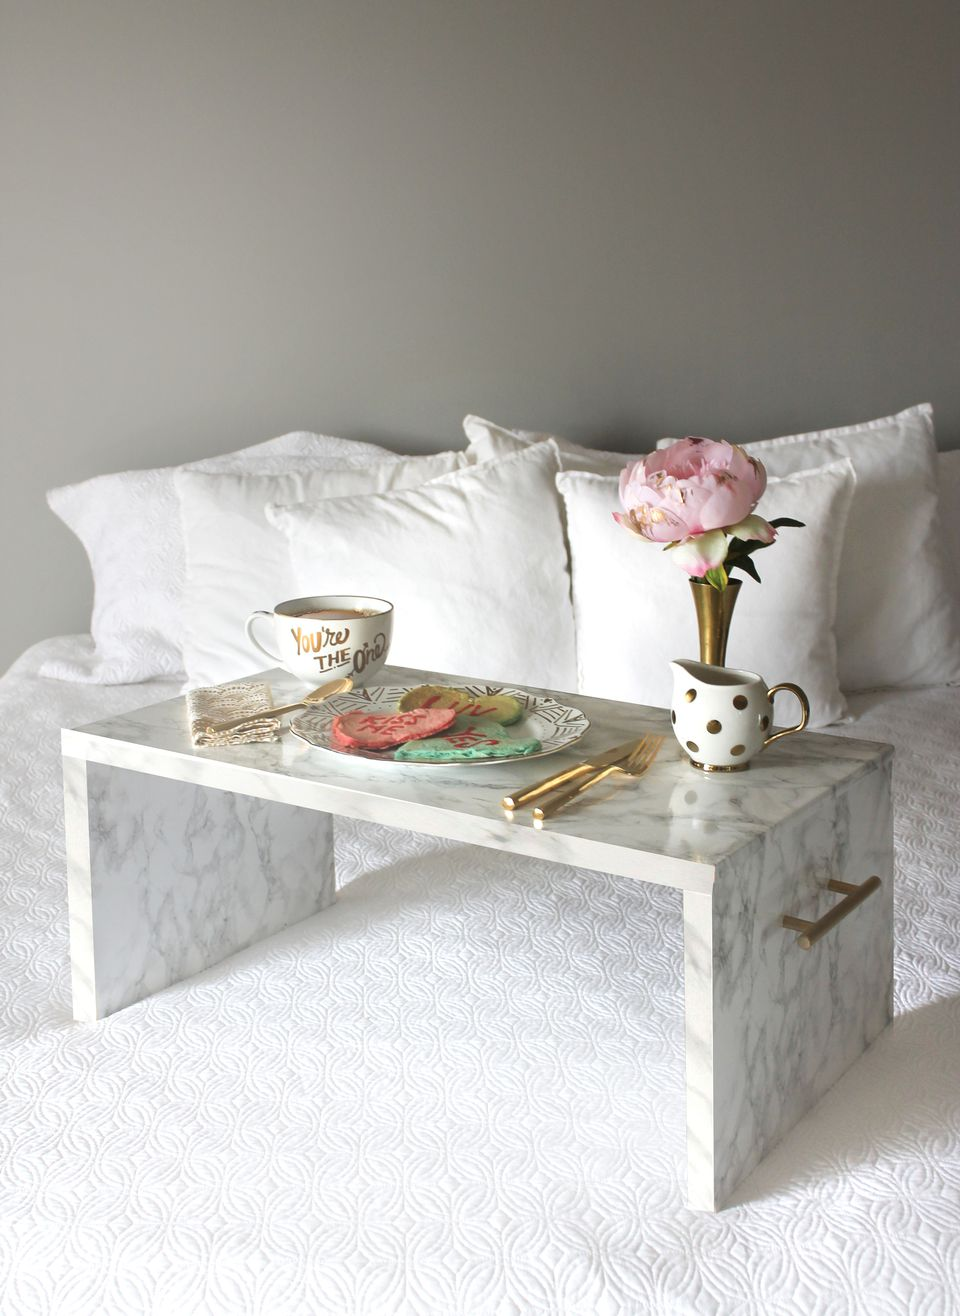 Bedroom decor projects to DIY